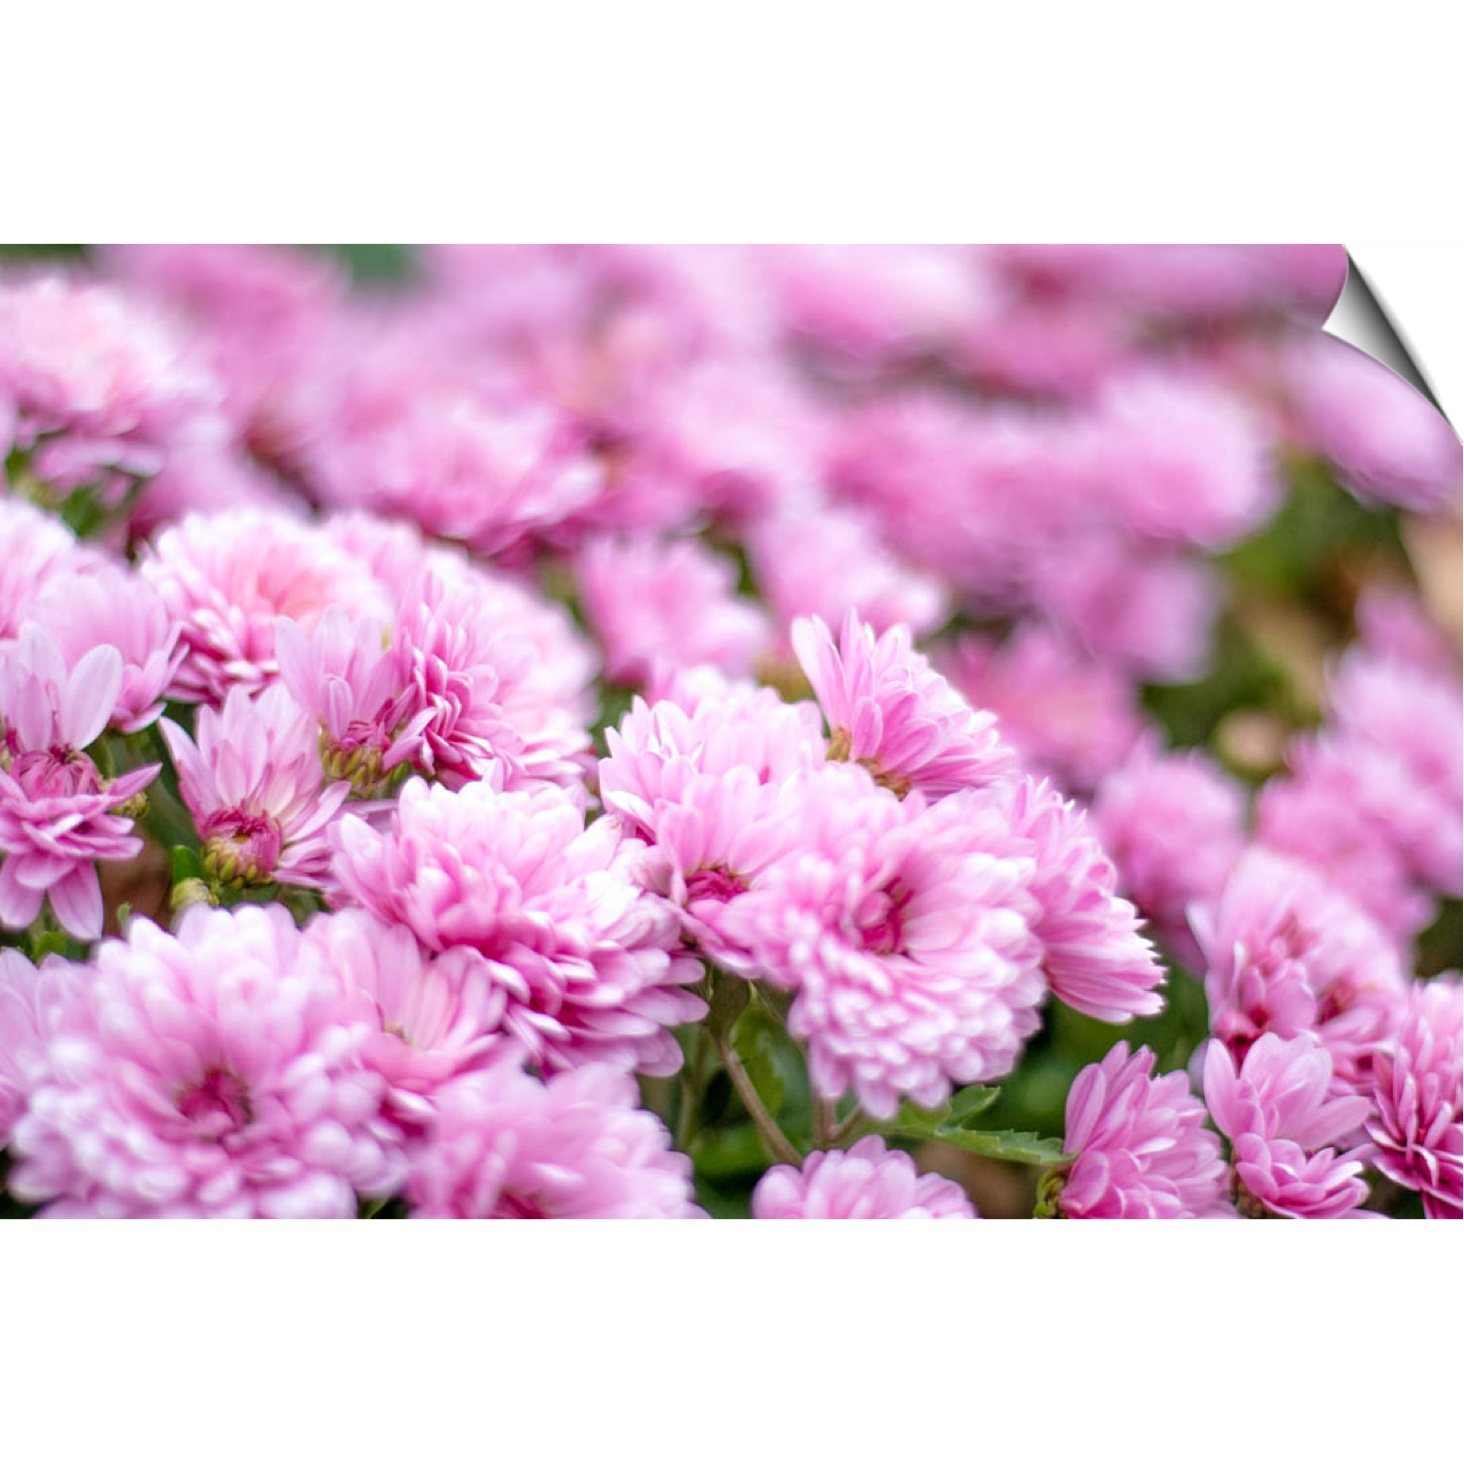 PINK CHRYSANTHEMUM WALL DECAL